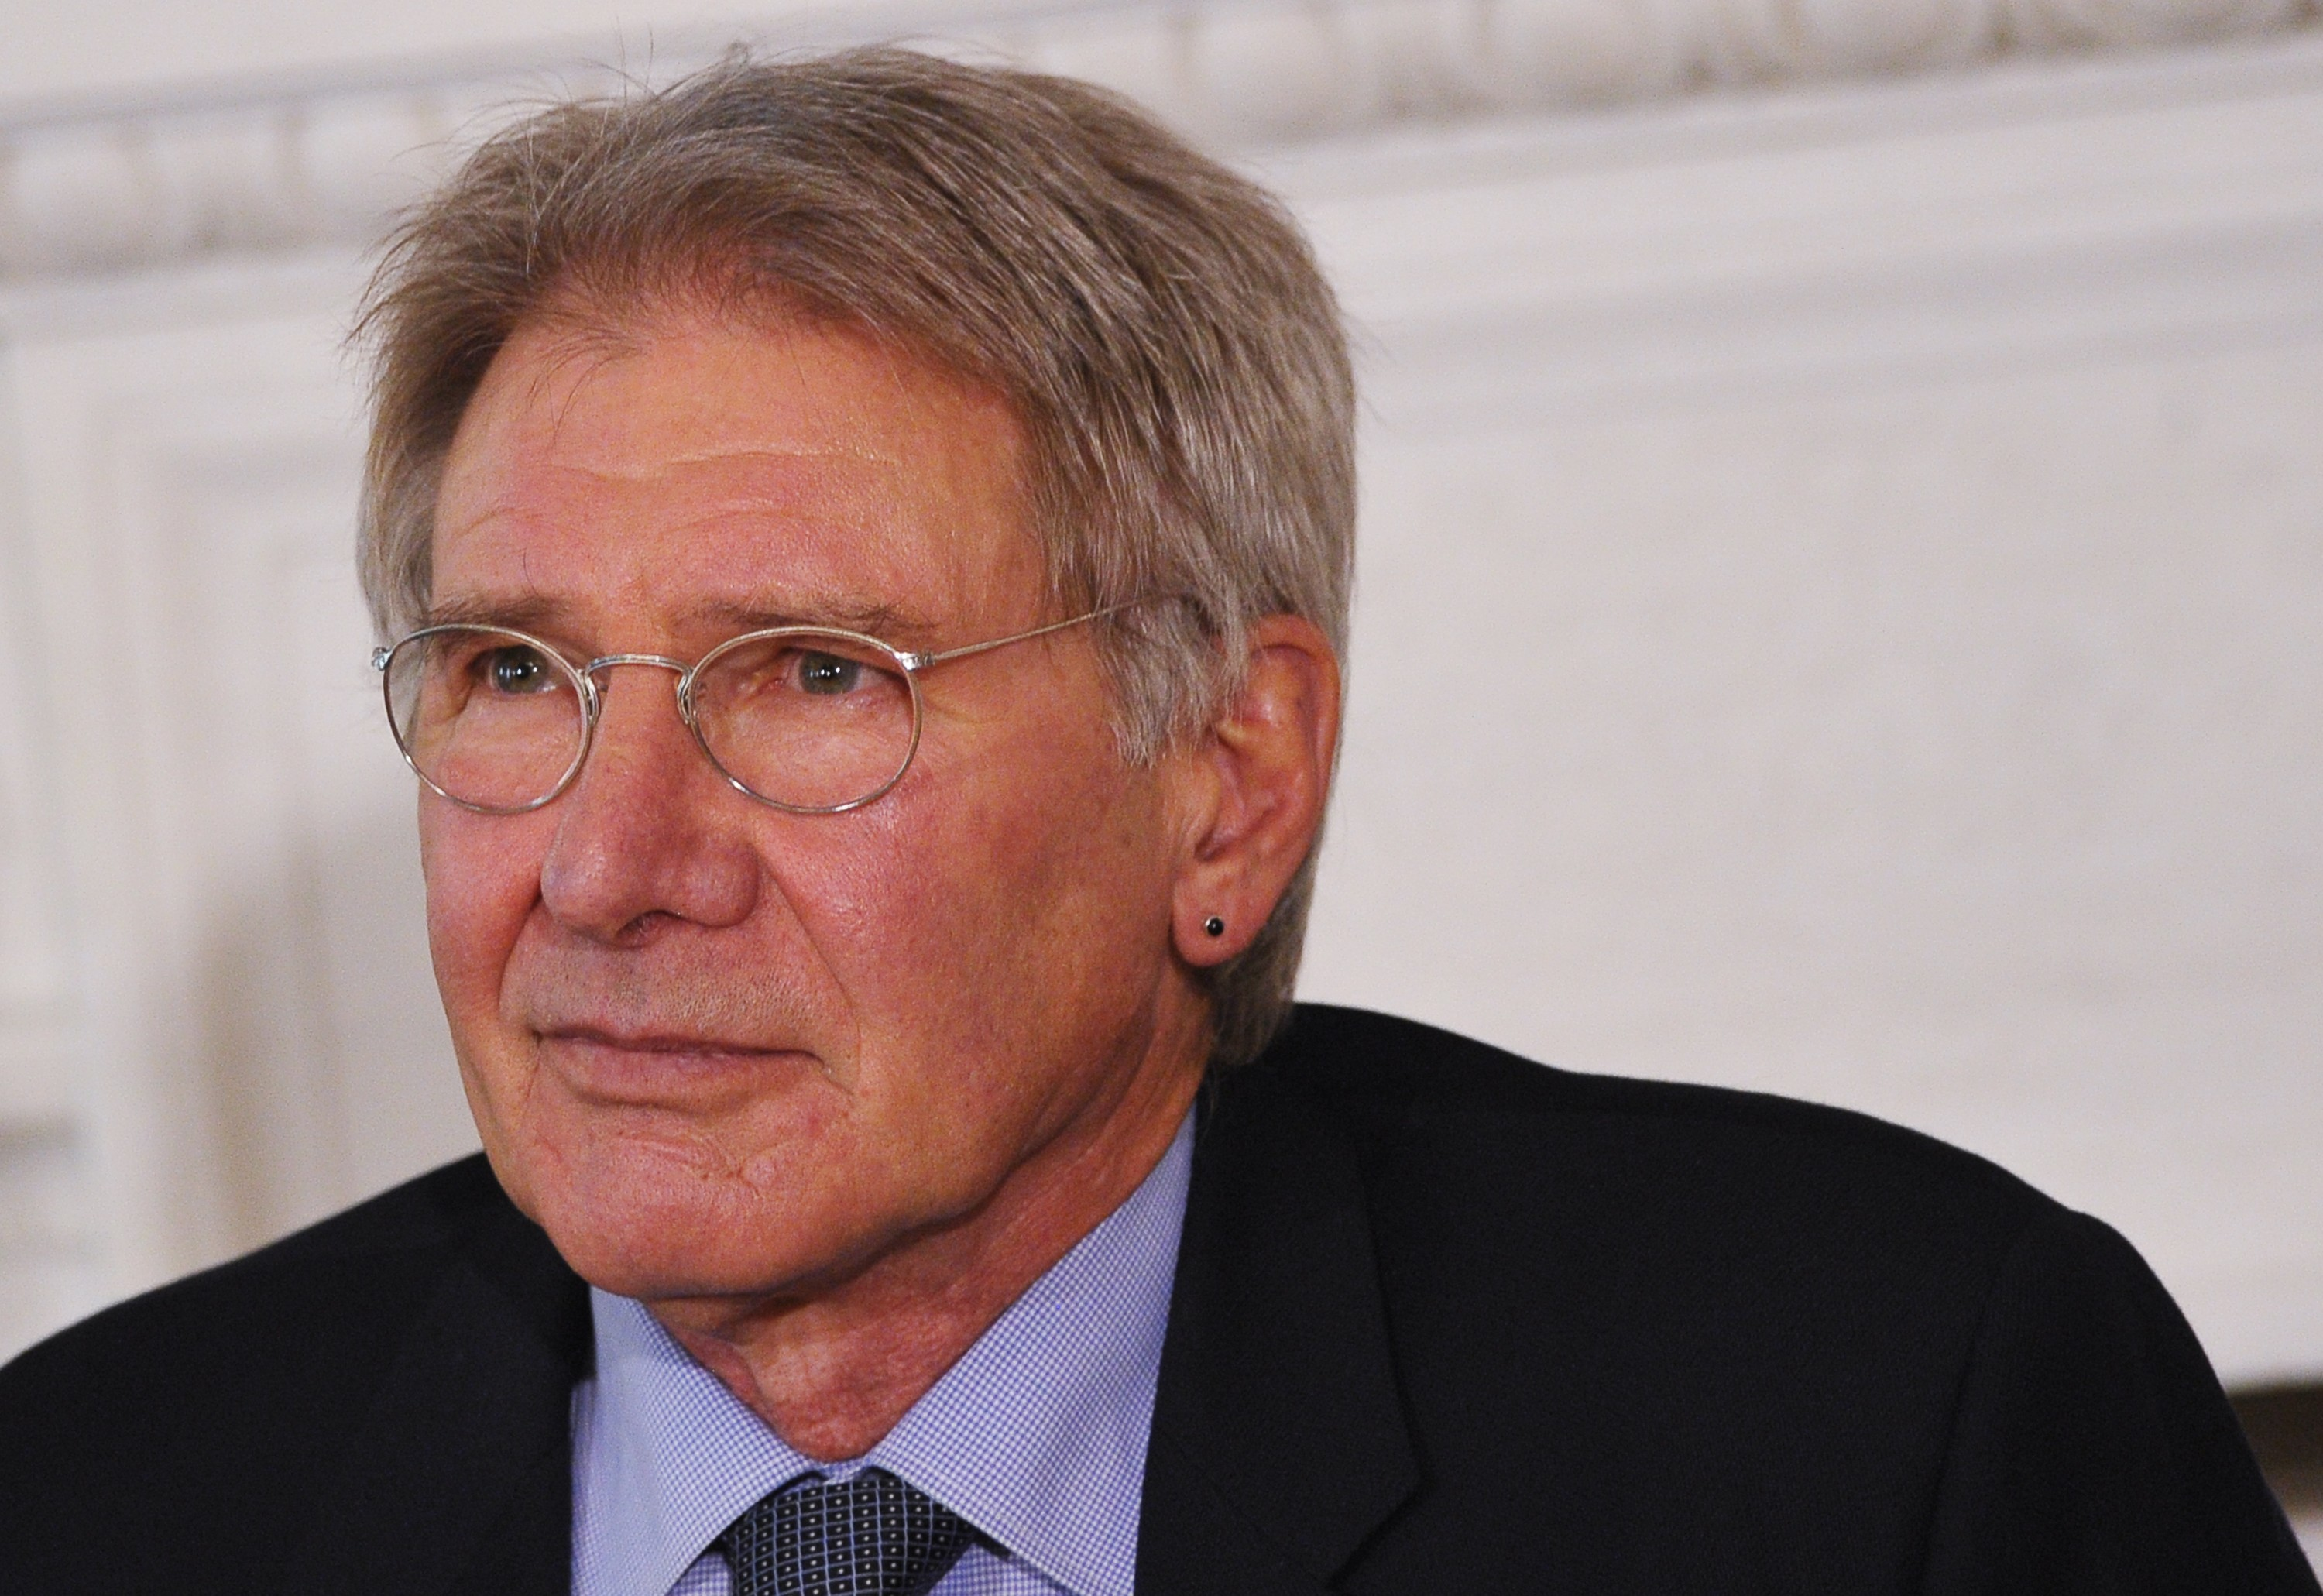 Harrison Ford Is OK After Plane Crash, Confirms Son Ben Ford